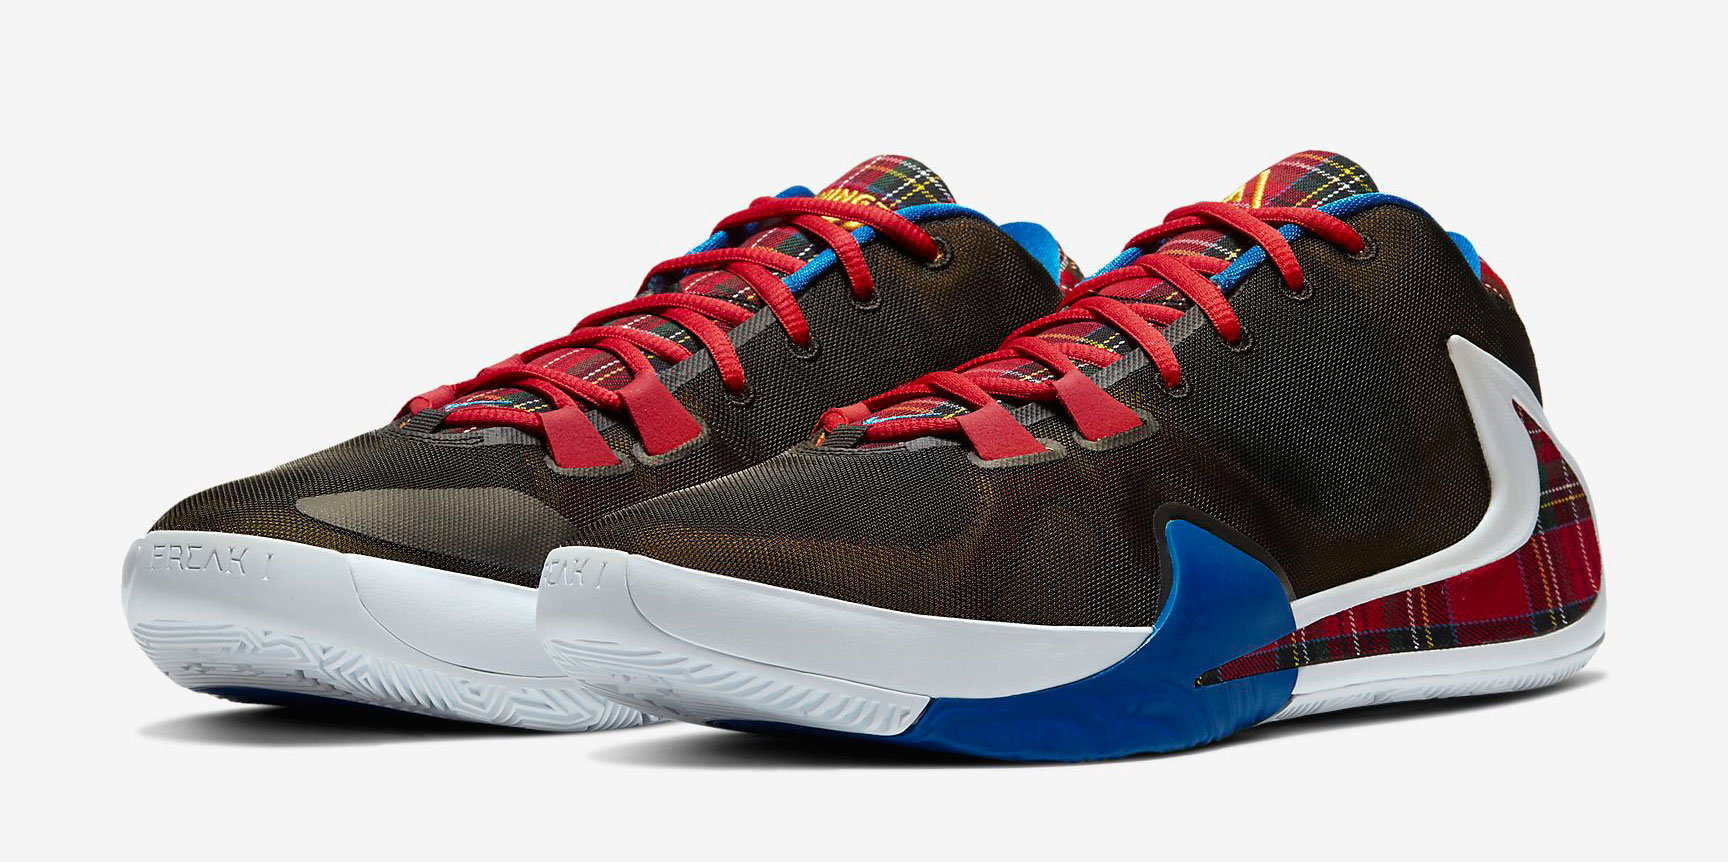 nike-zoom-freak-1-all-star-employee-of-the-month-release-date-1